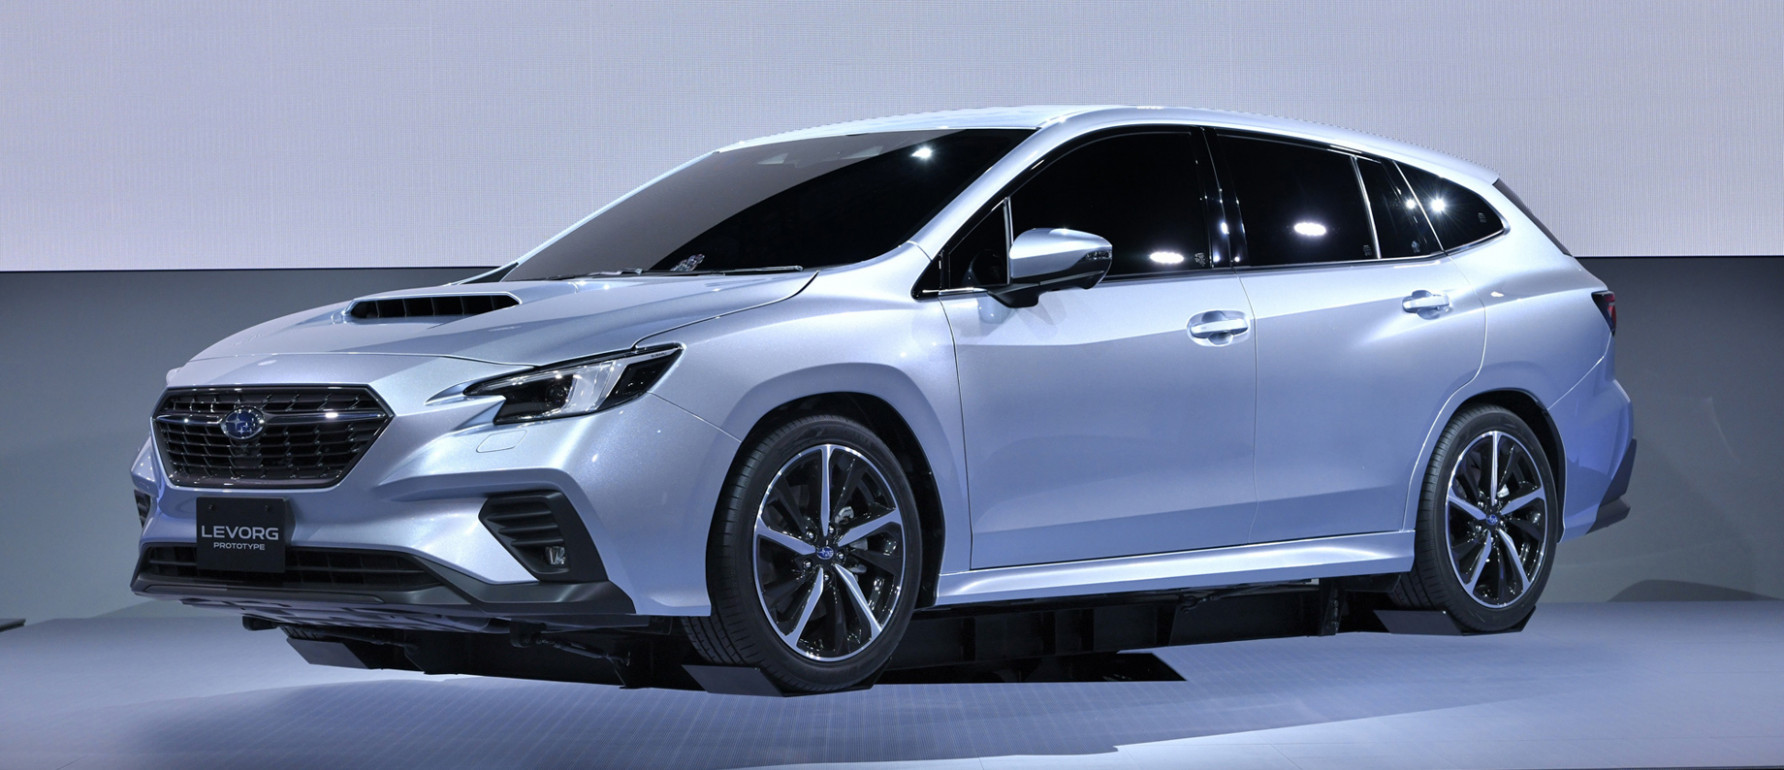 Release Date and Concept Subaru Models 2022